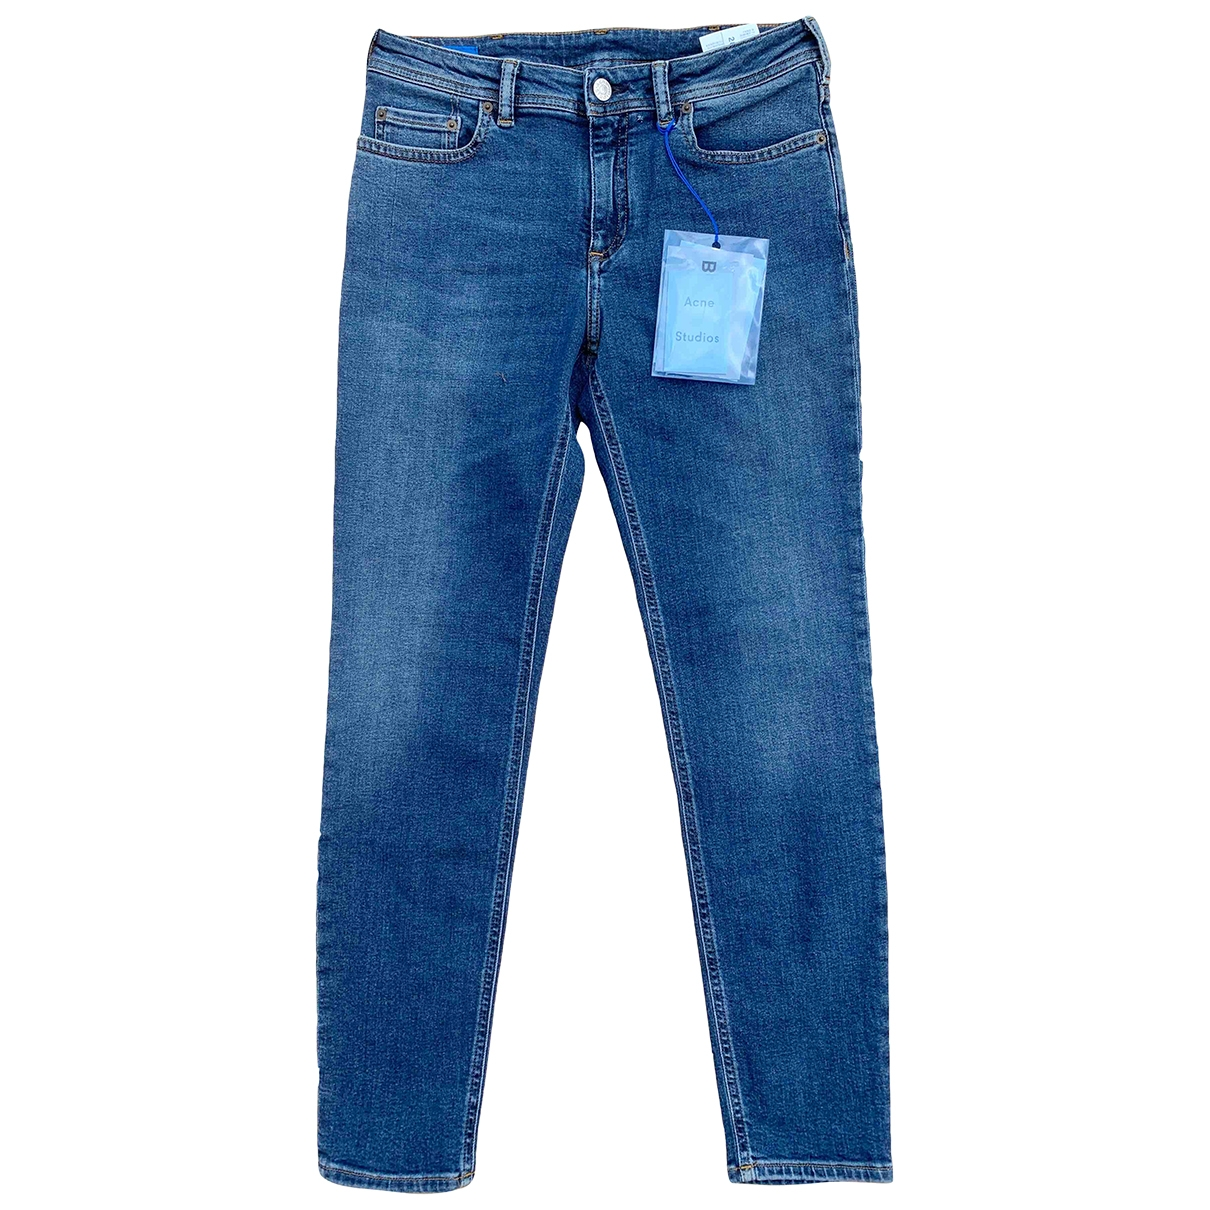 Acne Studios Bl Konst Blue Cotton - elasthane Jeans for Women 28 US